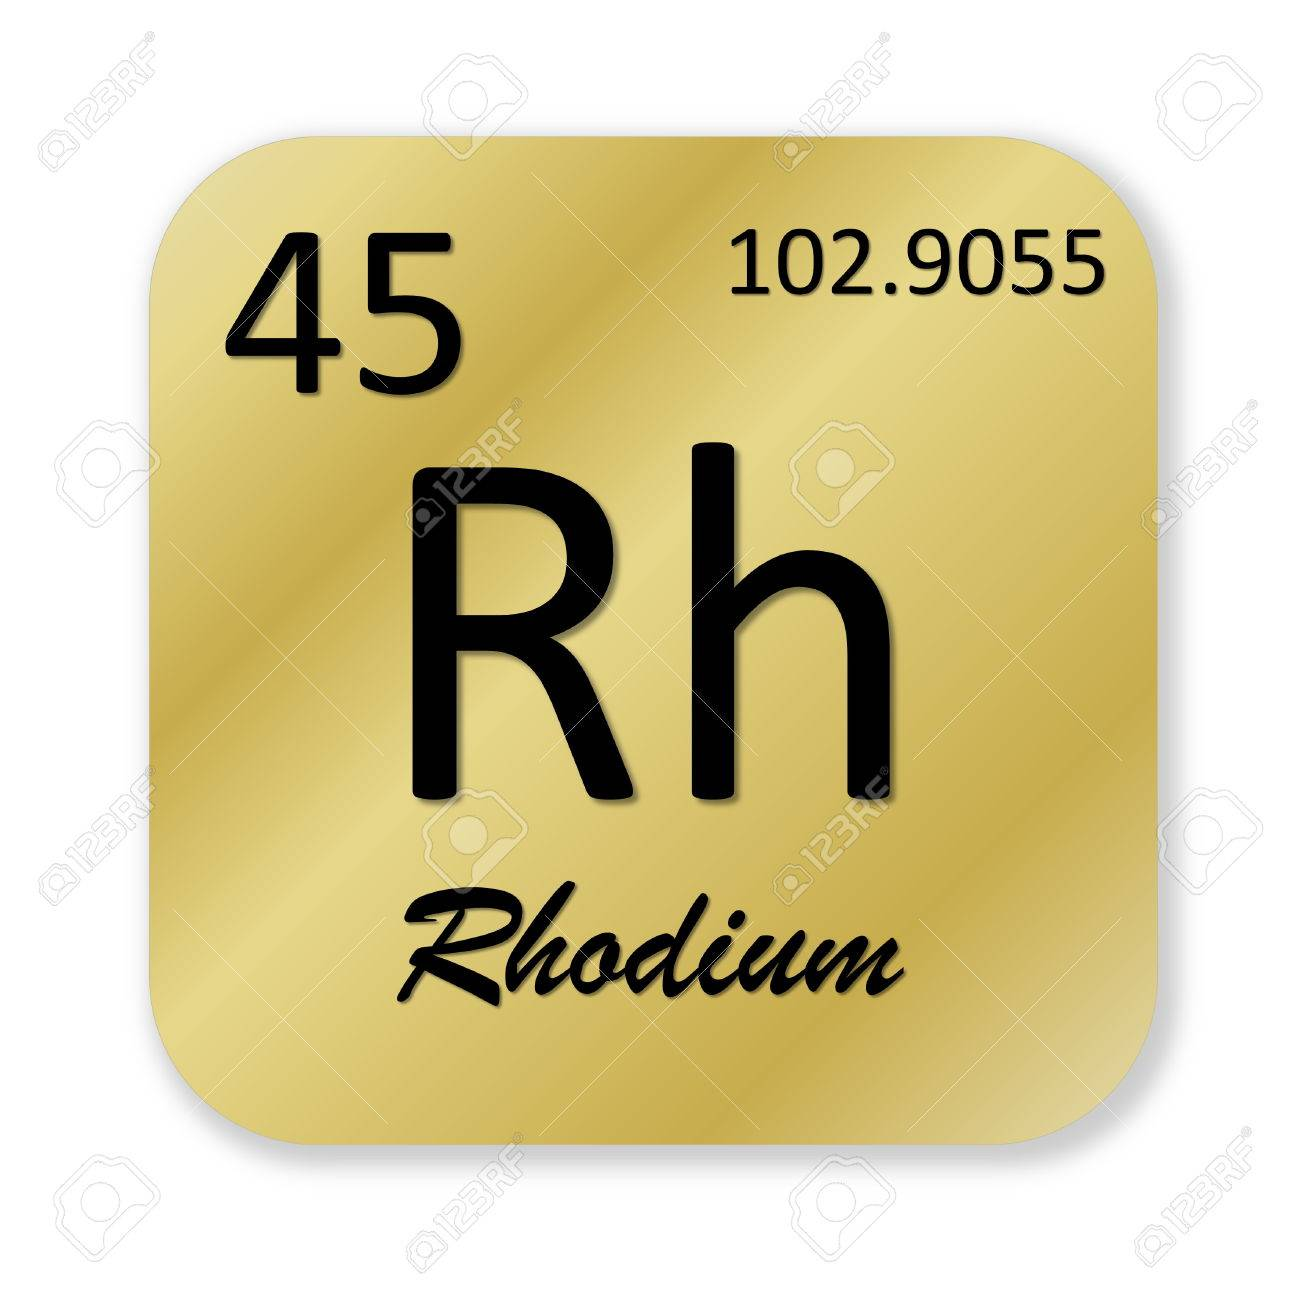 112 rhodium stock vector illustration and royalty free rhodium clipart black rhodium element into golden square shape isolated in white background stock photo gamestrikefo Image collections